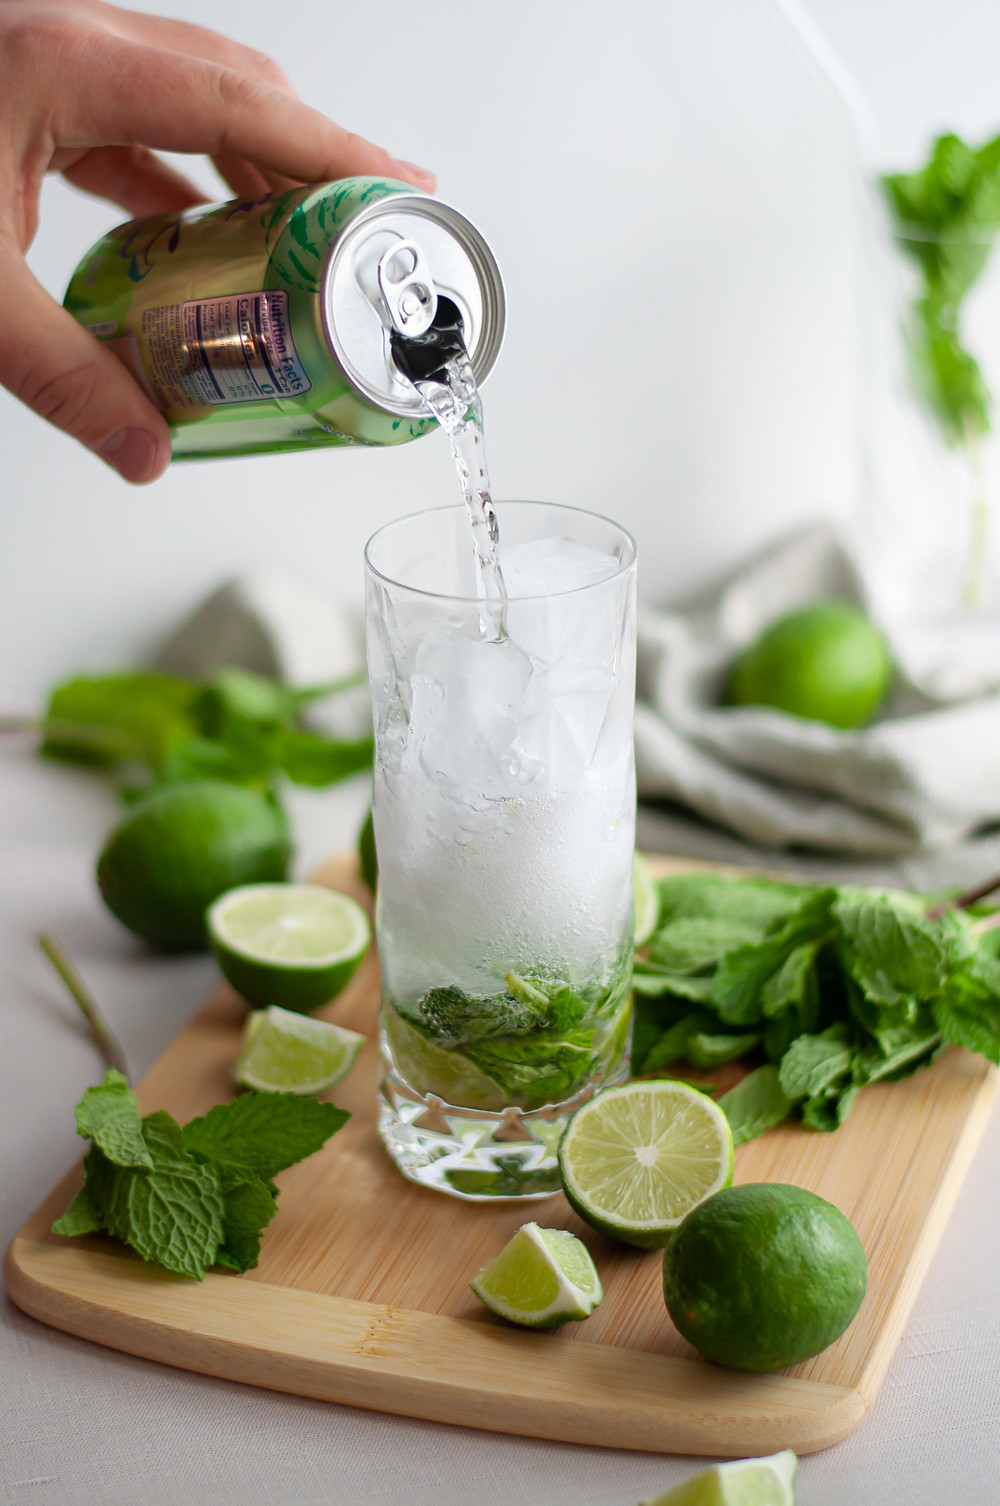 Image of the sparkling water being poured into the highball glass. The glass is on a cutting board and surrounded by lots of mint and limes.